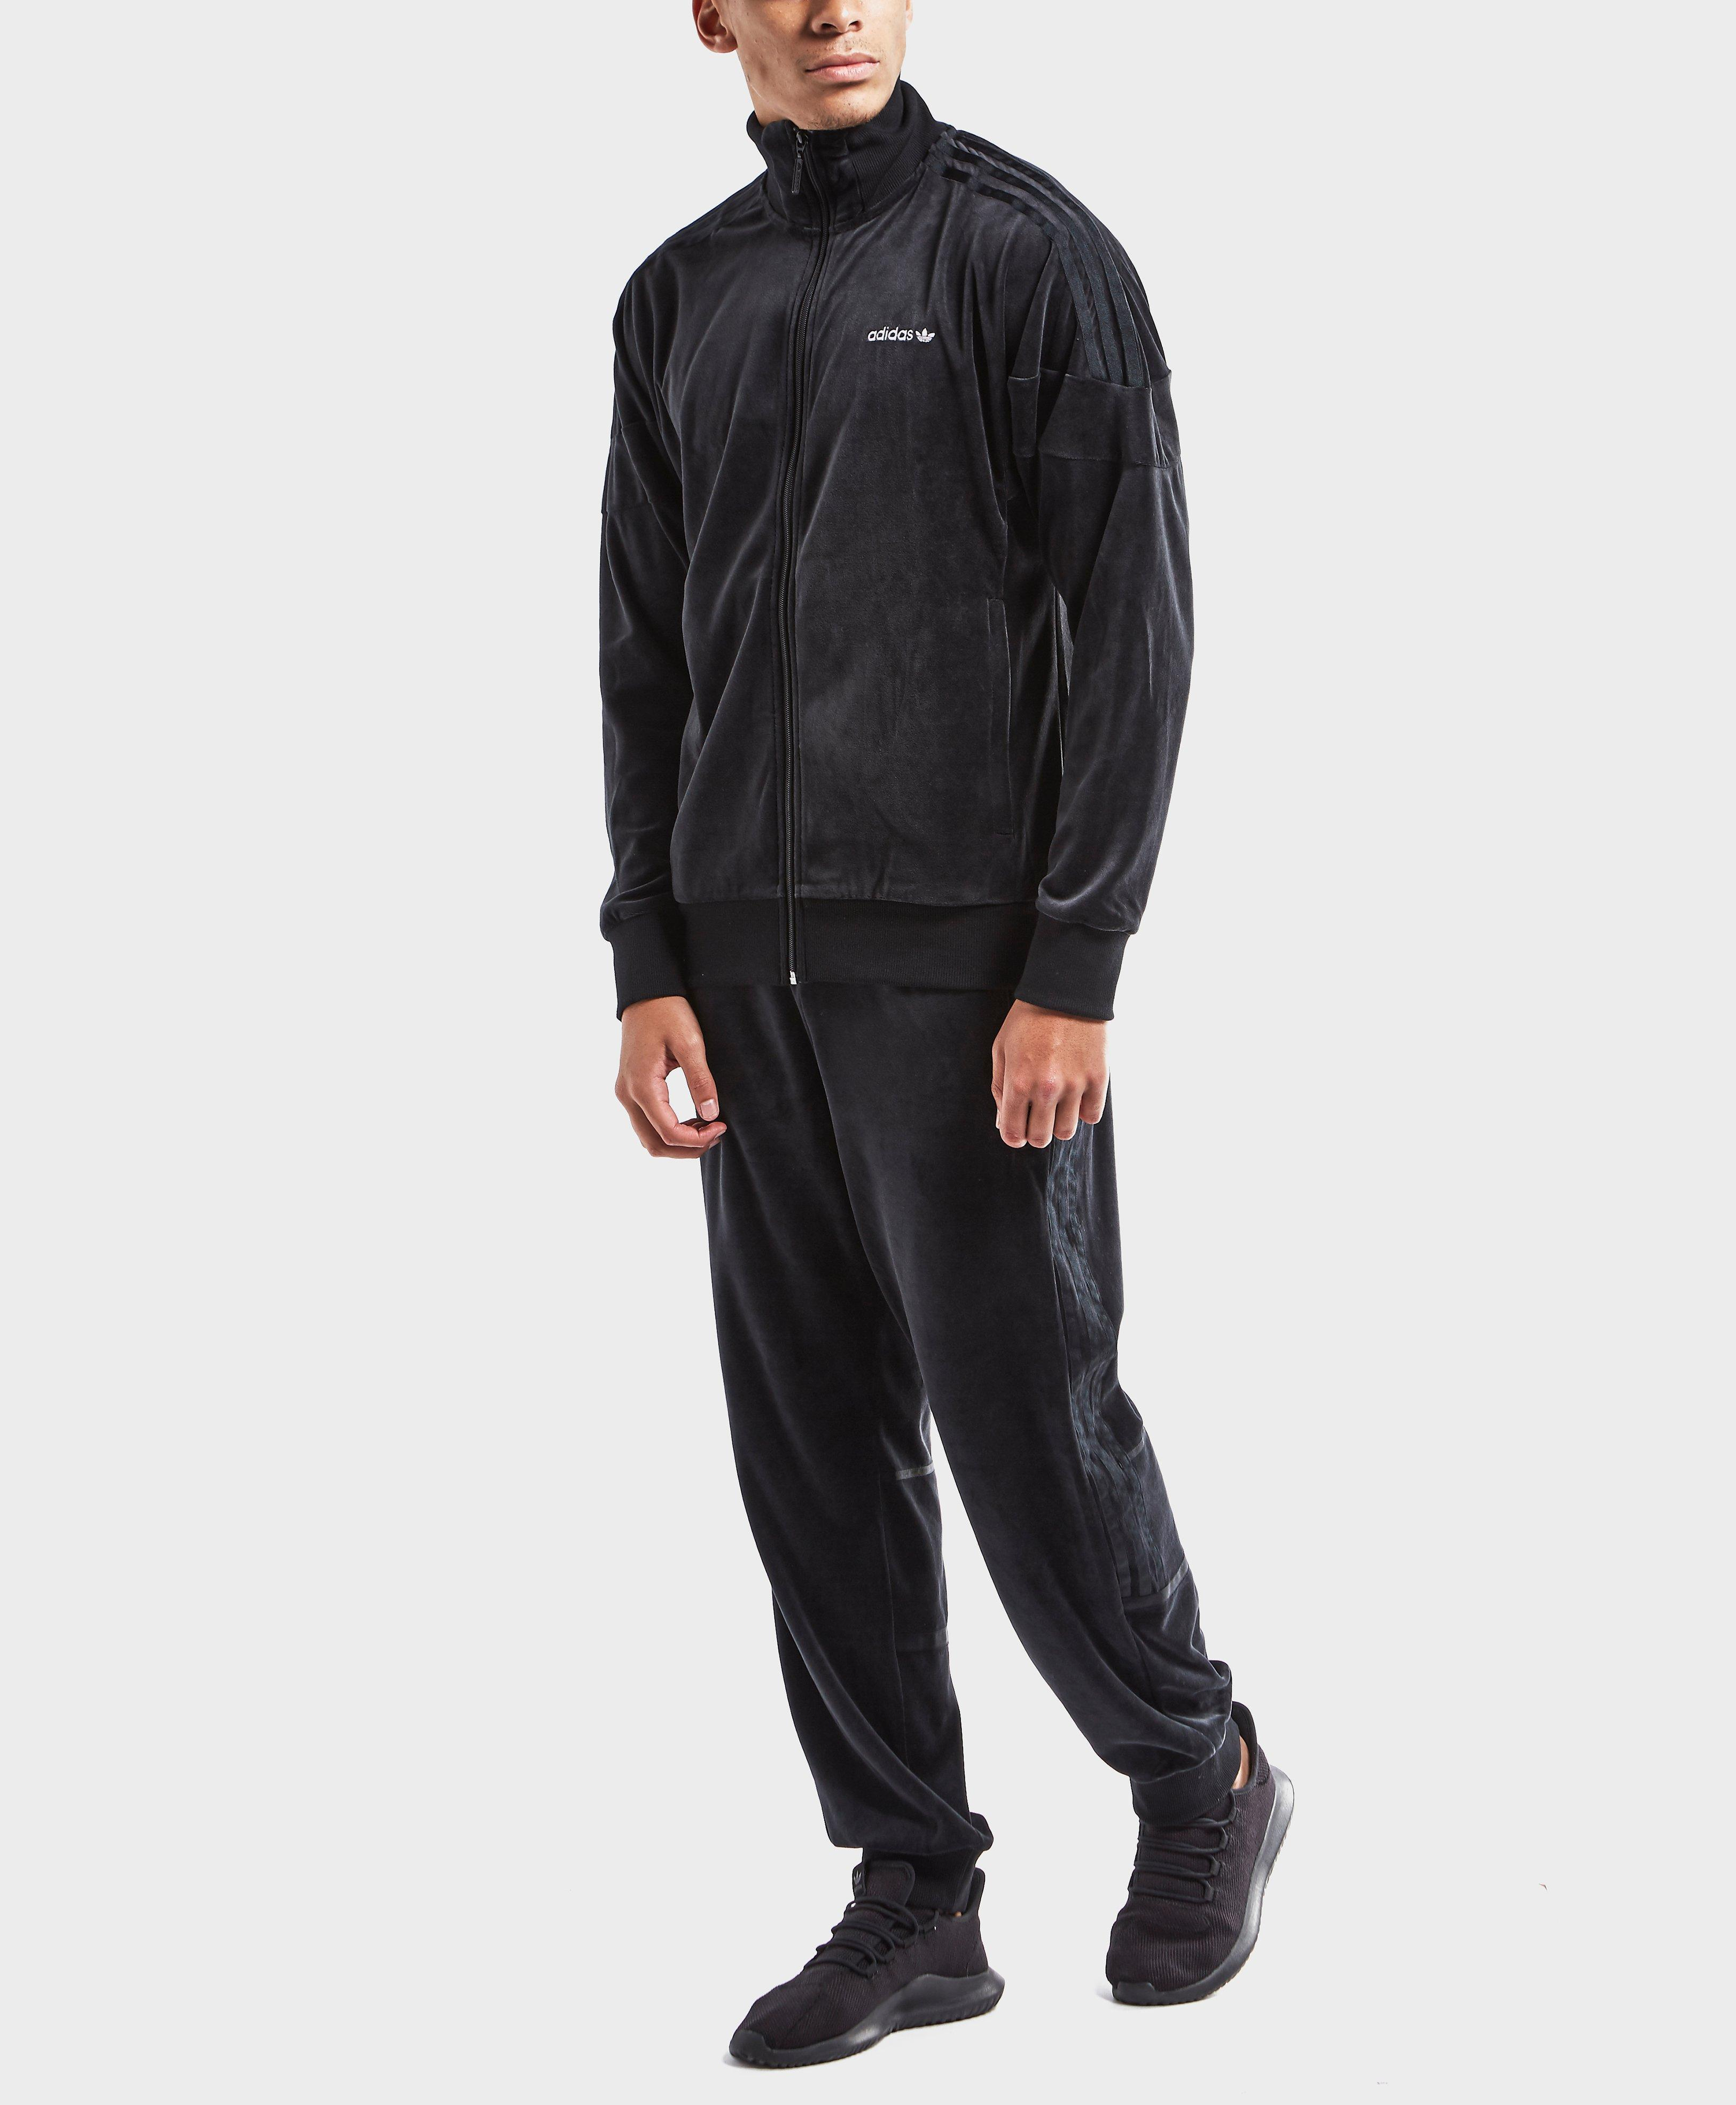 clearance sale 100% high quality check out Clr84 Velour Track Top